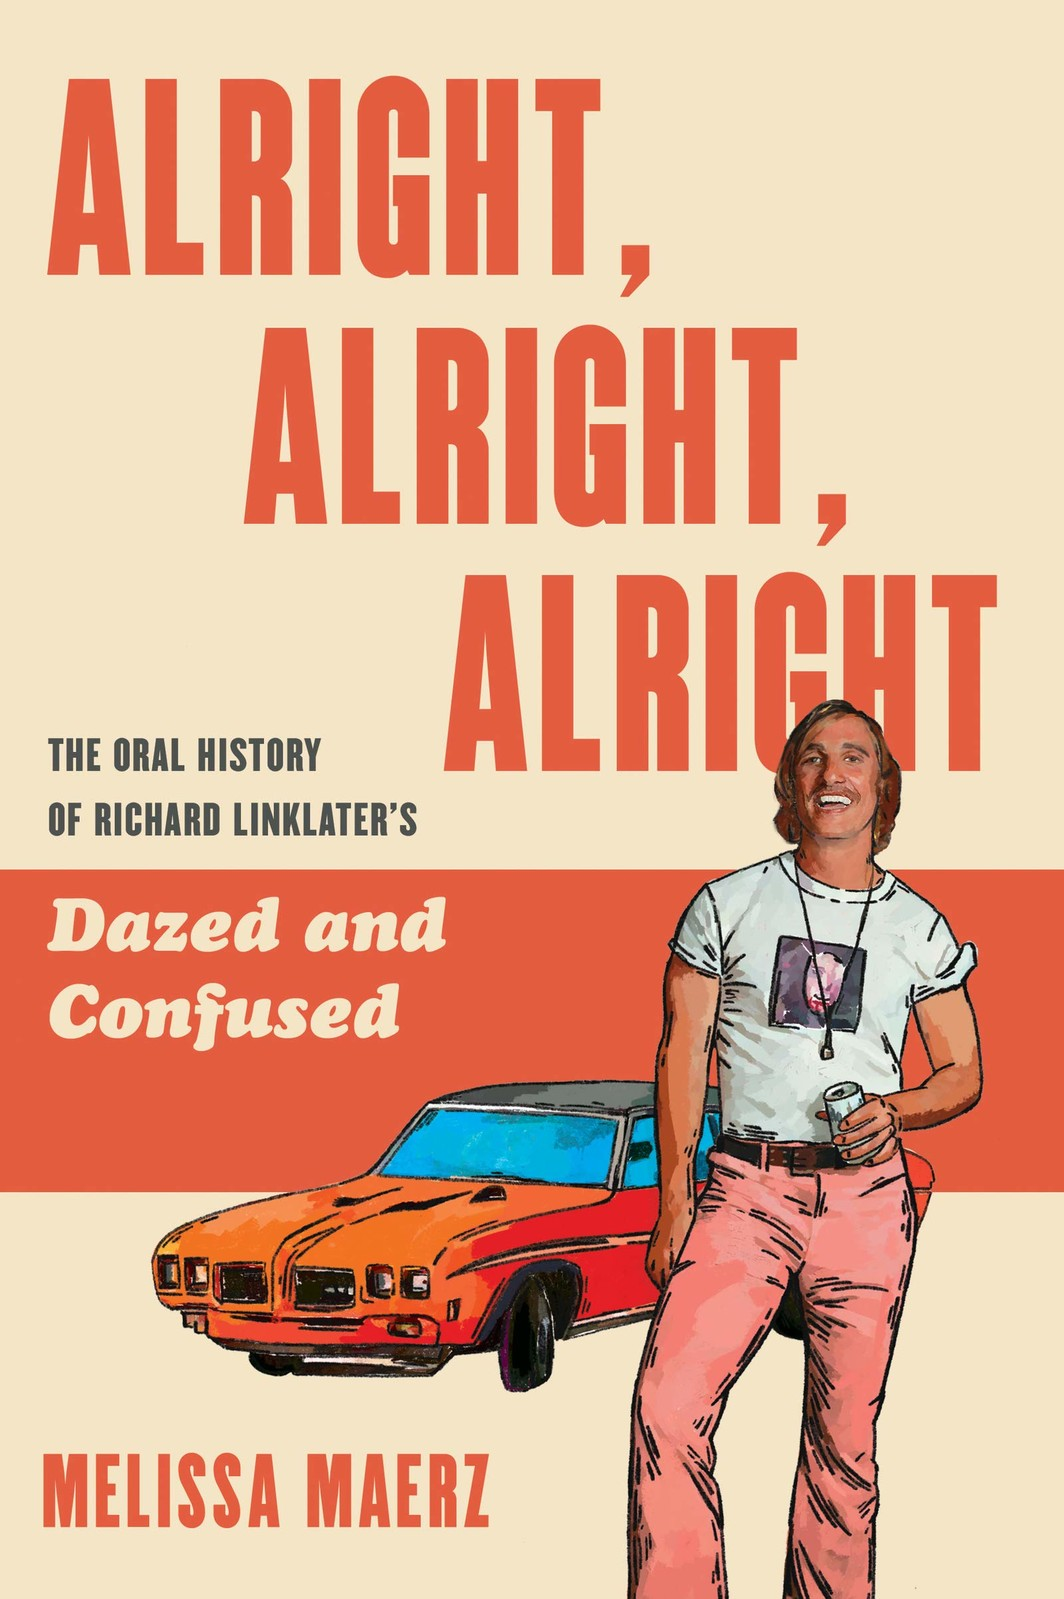 The cover of Alright, Alright, Alright: The Oral History of Richard Linklater's Dazed and Confused